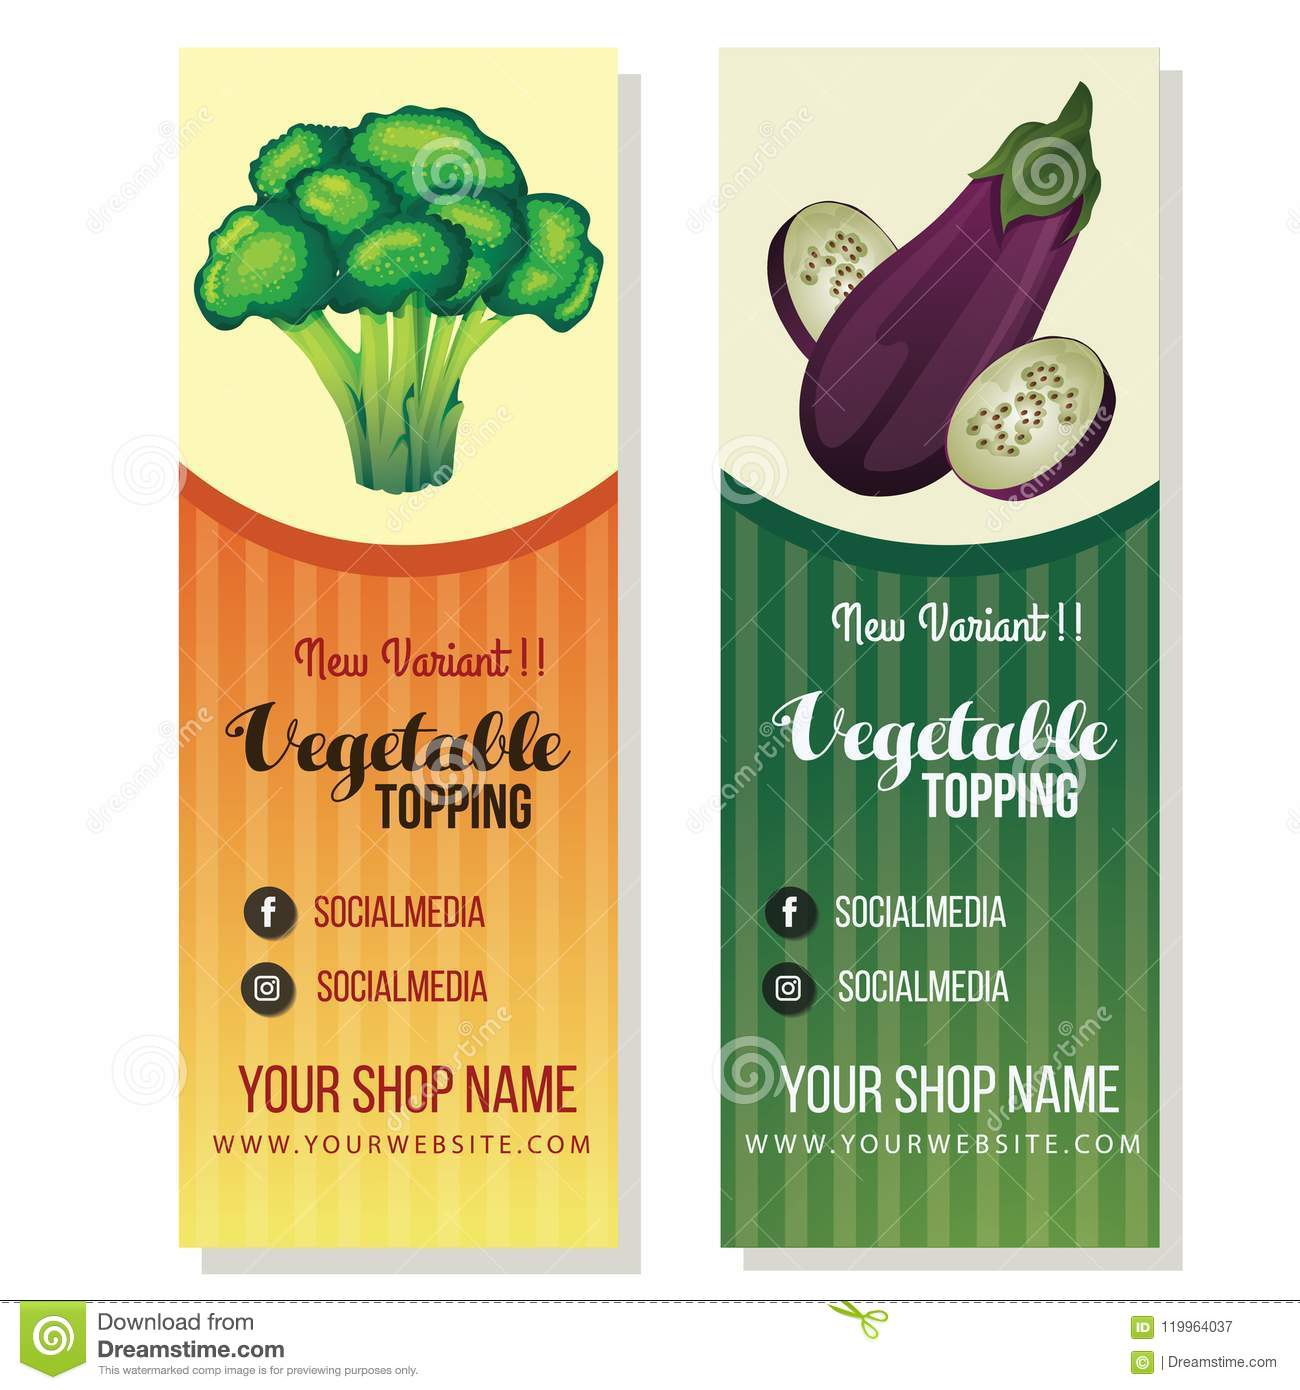 broccoli eggplant banner template stock vector illustration of